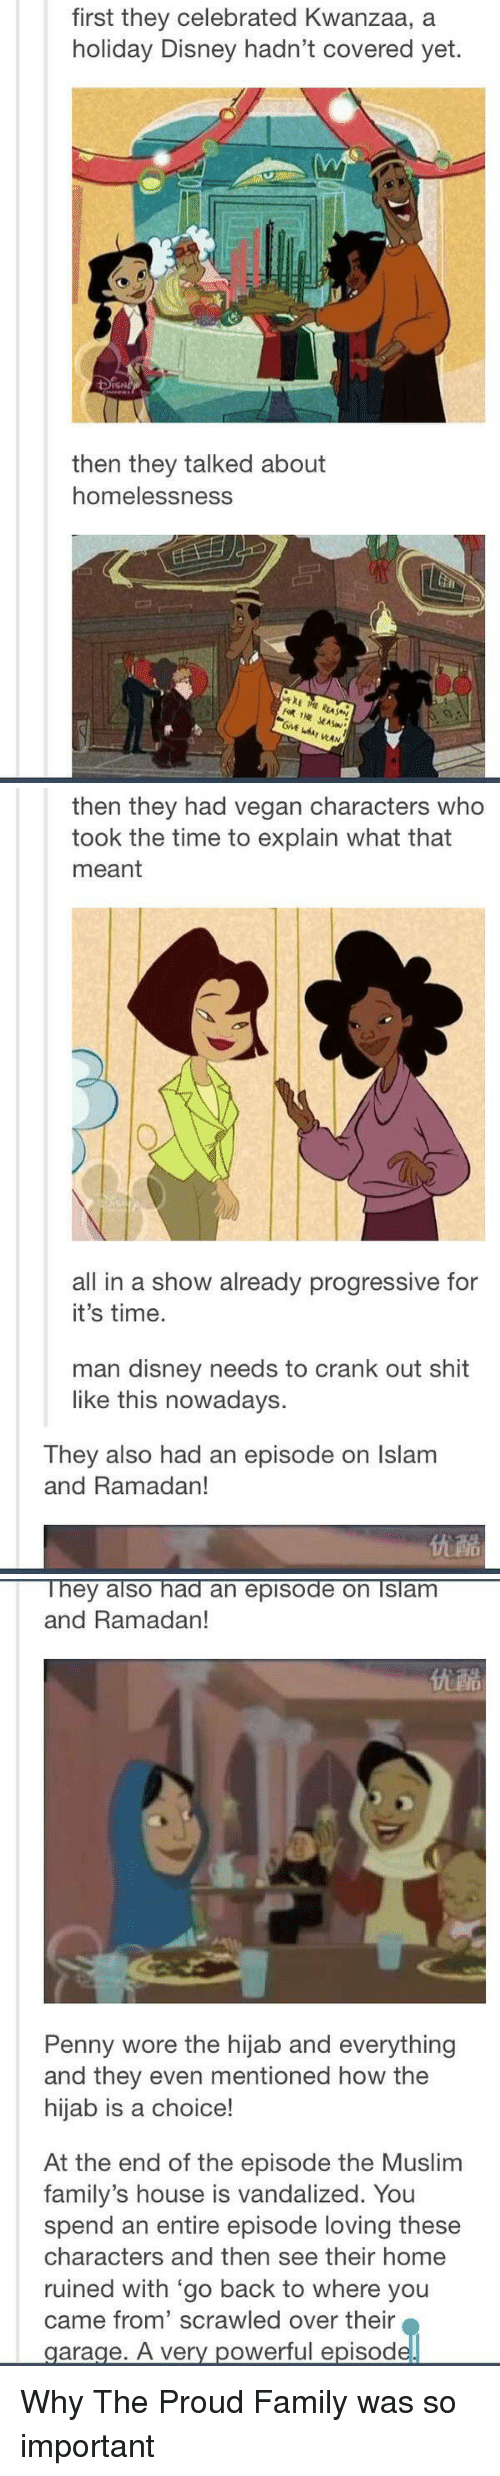 kwanzaa: first they celebrated Kwanzaa, a  holiday Disney hadn't covered yet.  then they talked about  homelessness.  THE  WAN   then they had vegan characters who  took the time to explain what that  meant  all in a show already progressive for  it's time.  man disney needs to crank out shit  like this nowadays.  They also had an episode on lslam  and Ramadan!   They also had an episode on Islam  and Ramadan!  Penny wore the hijab and everything  and they even mentioned how the  hijab is a choice!  At the end of the episode the Muslim  family's house is vandalized. You  spend an entire episode loving these  characters and then see their home  ruined with go back to where you  came from' scrawled over their  garage. A very powerful episod Why The Proud Family was so important